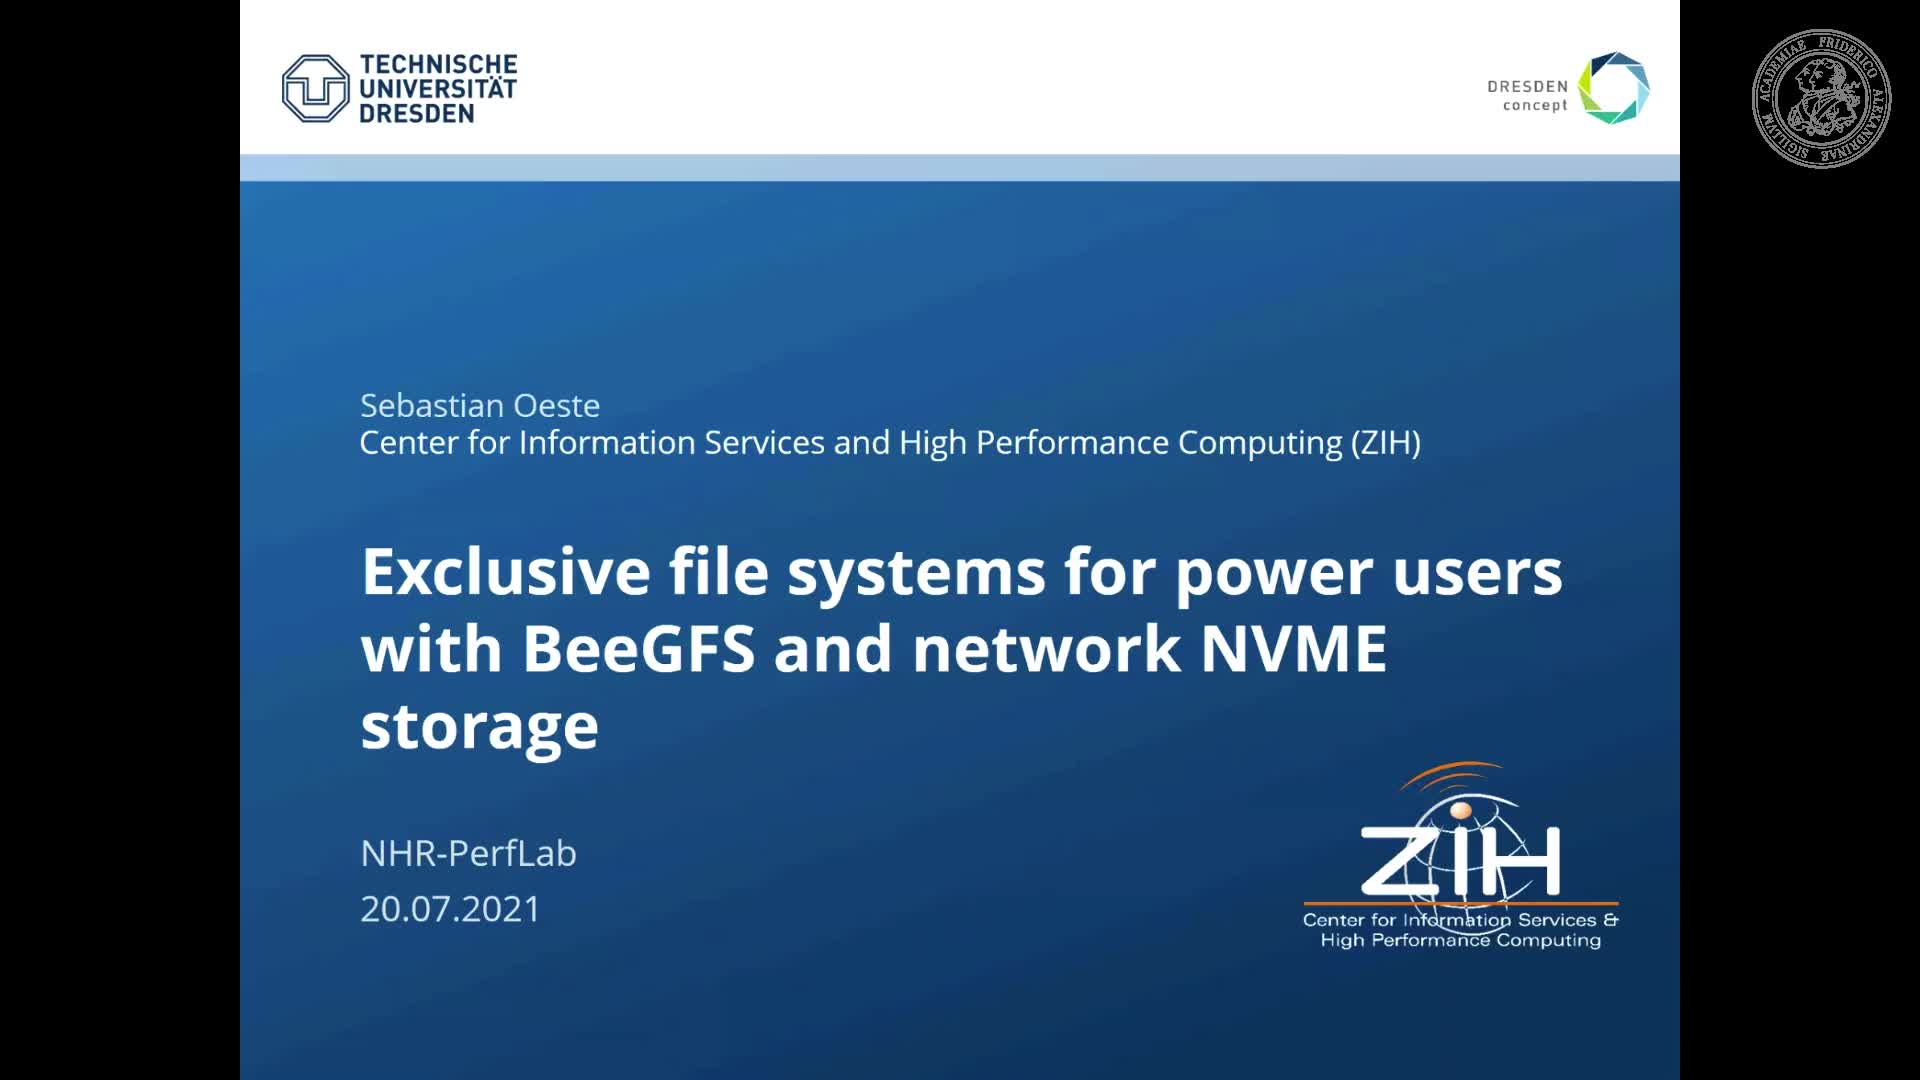 NHR PerfLab Seminar 2021-07-20: Exclusive file systems for power users with BeeGFS and network NVMe storage preview image